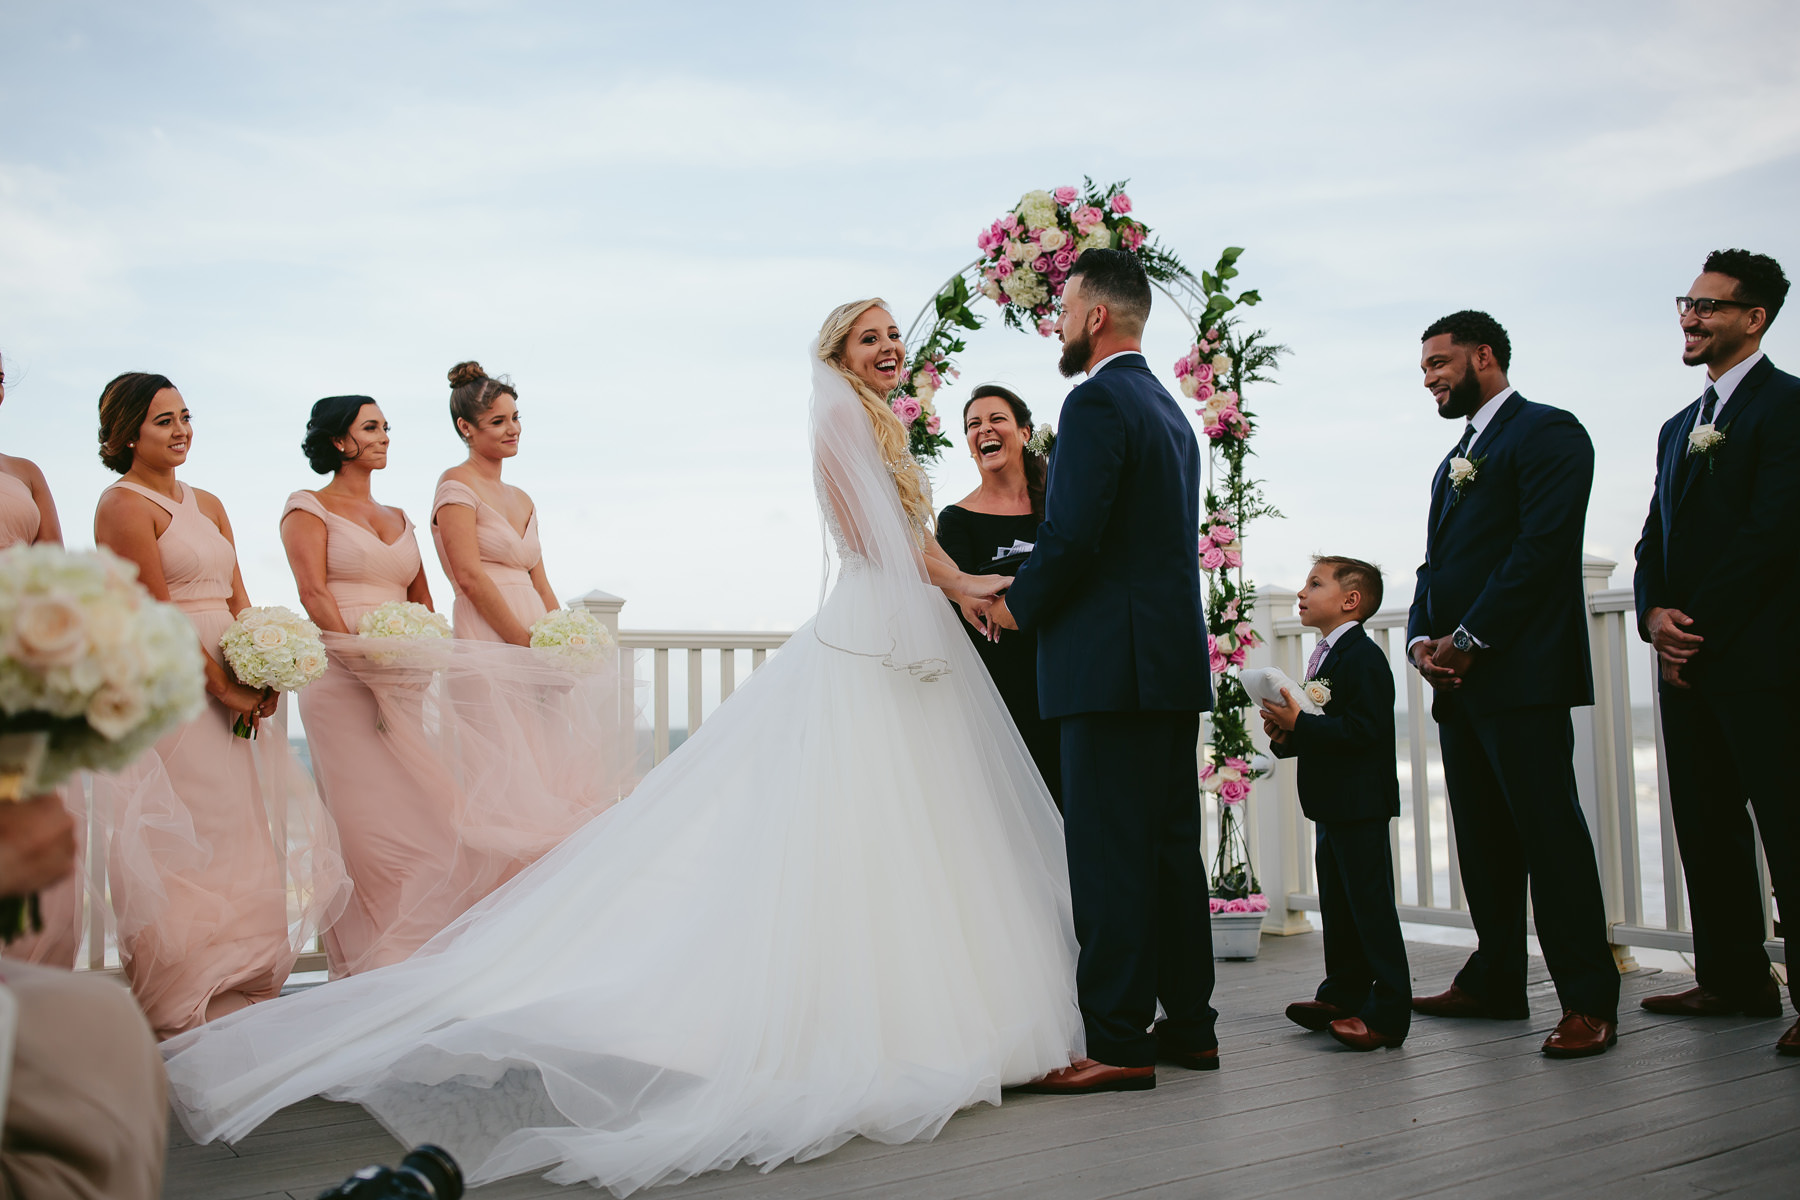 laughter-moments-wedding-day-ceremony-beach-hillsboro-beach-club-tiny-house-photo.jpg